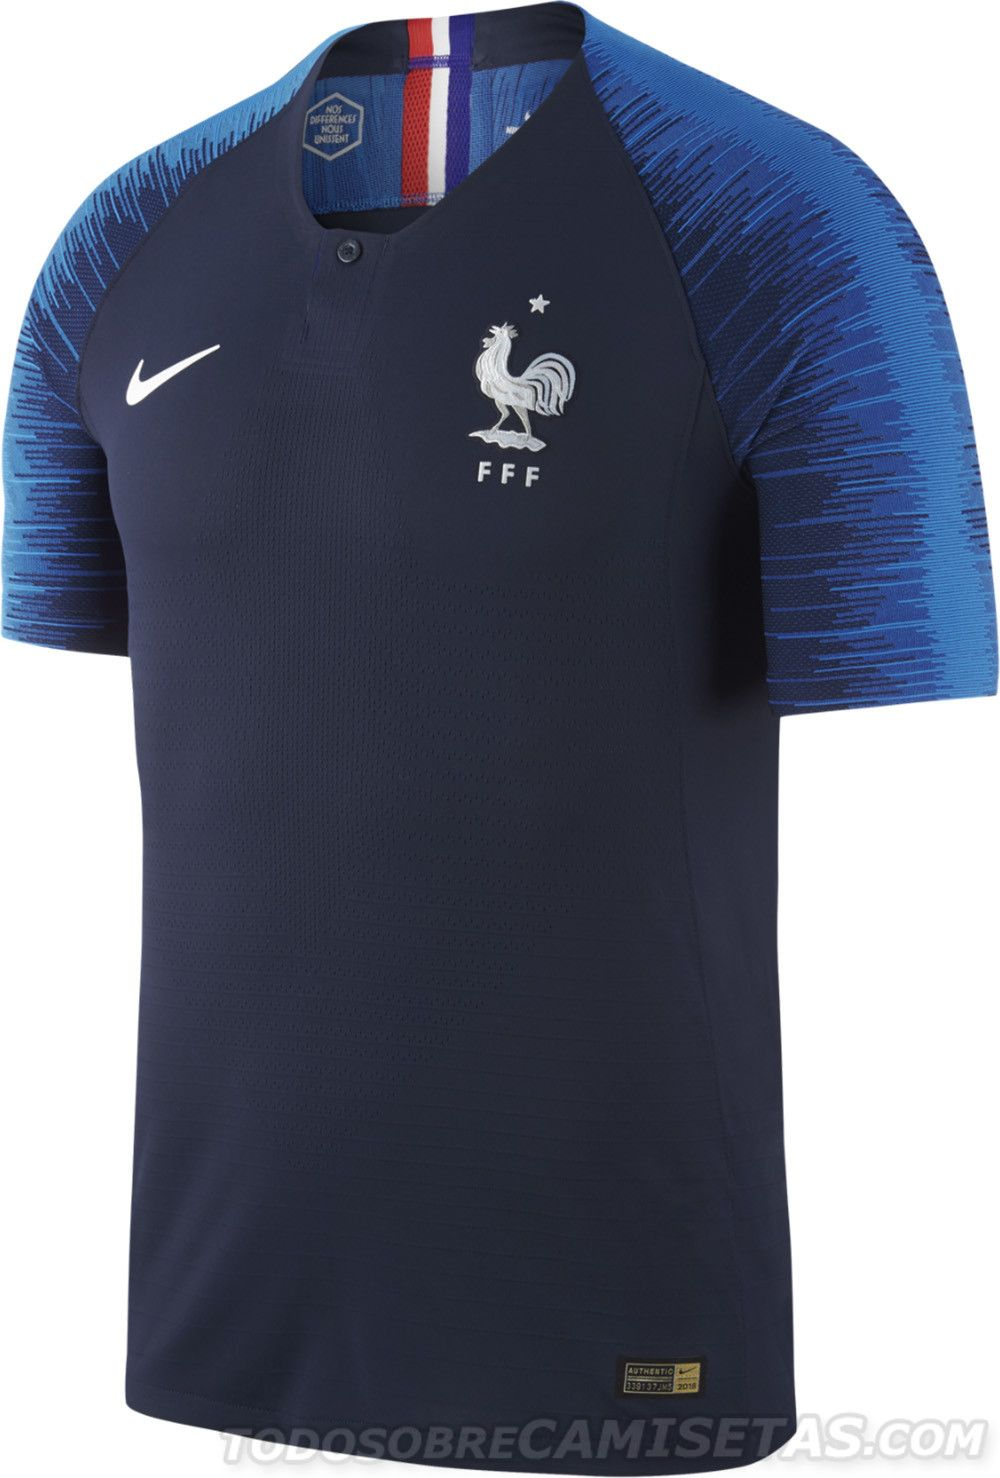 France 2018 World Cup Nike Kits  736b115dcbb